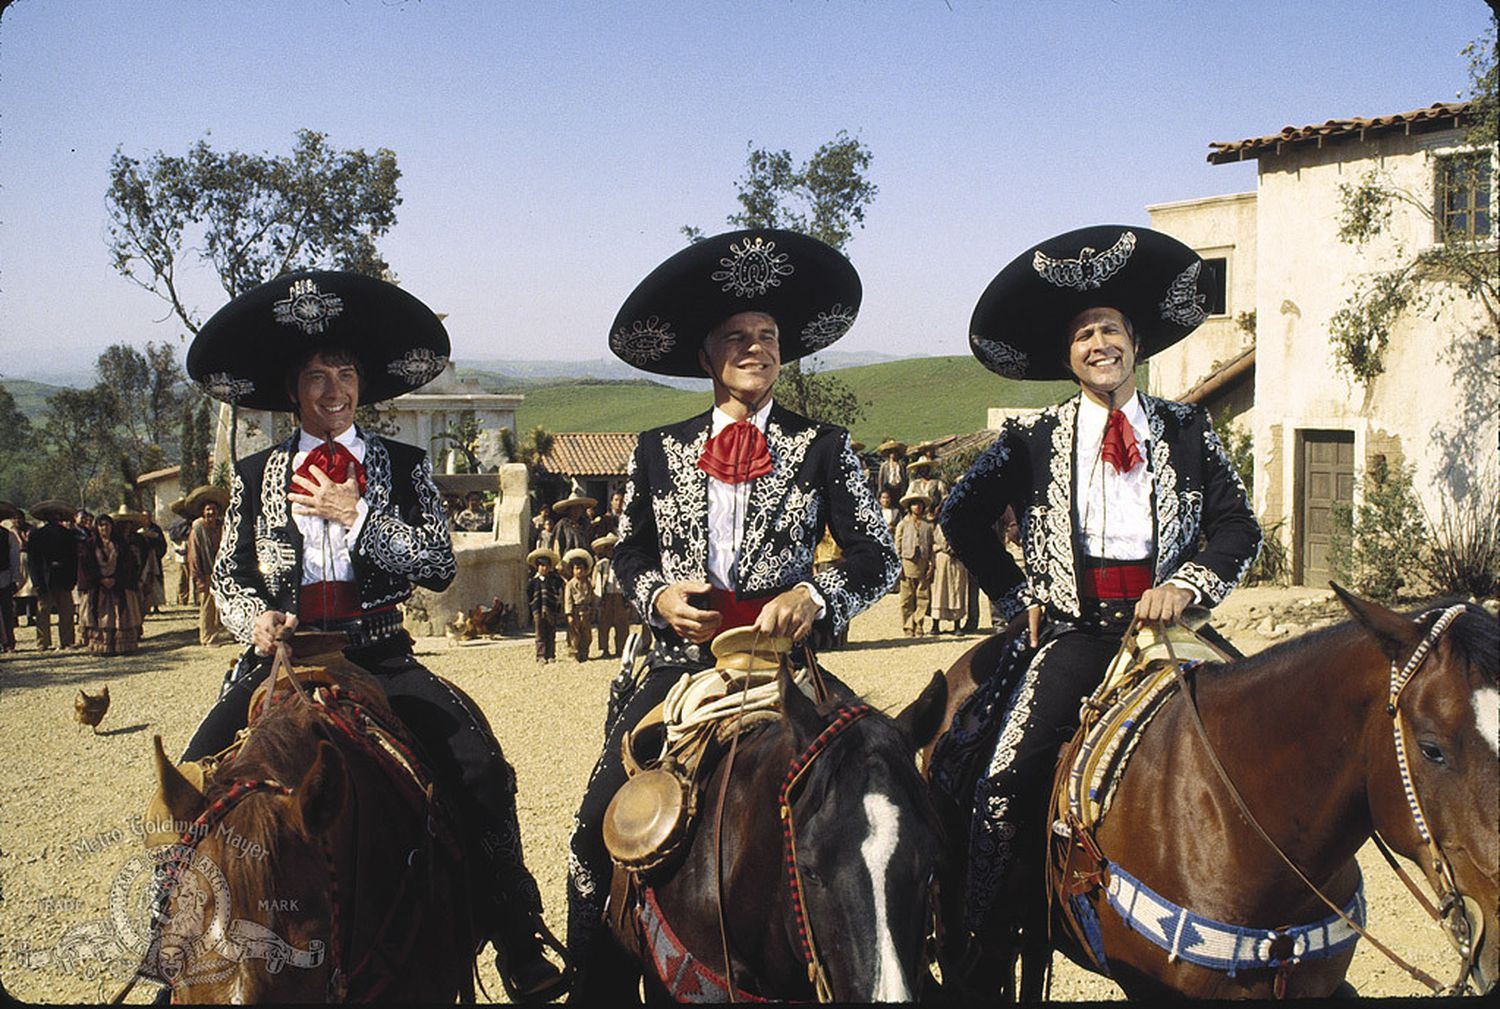 'The three amigos' - Moisés Naím